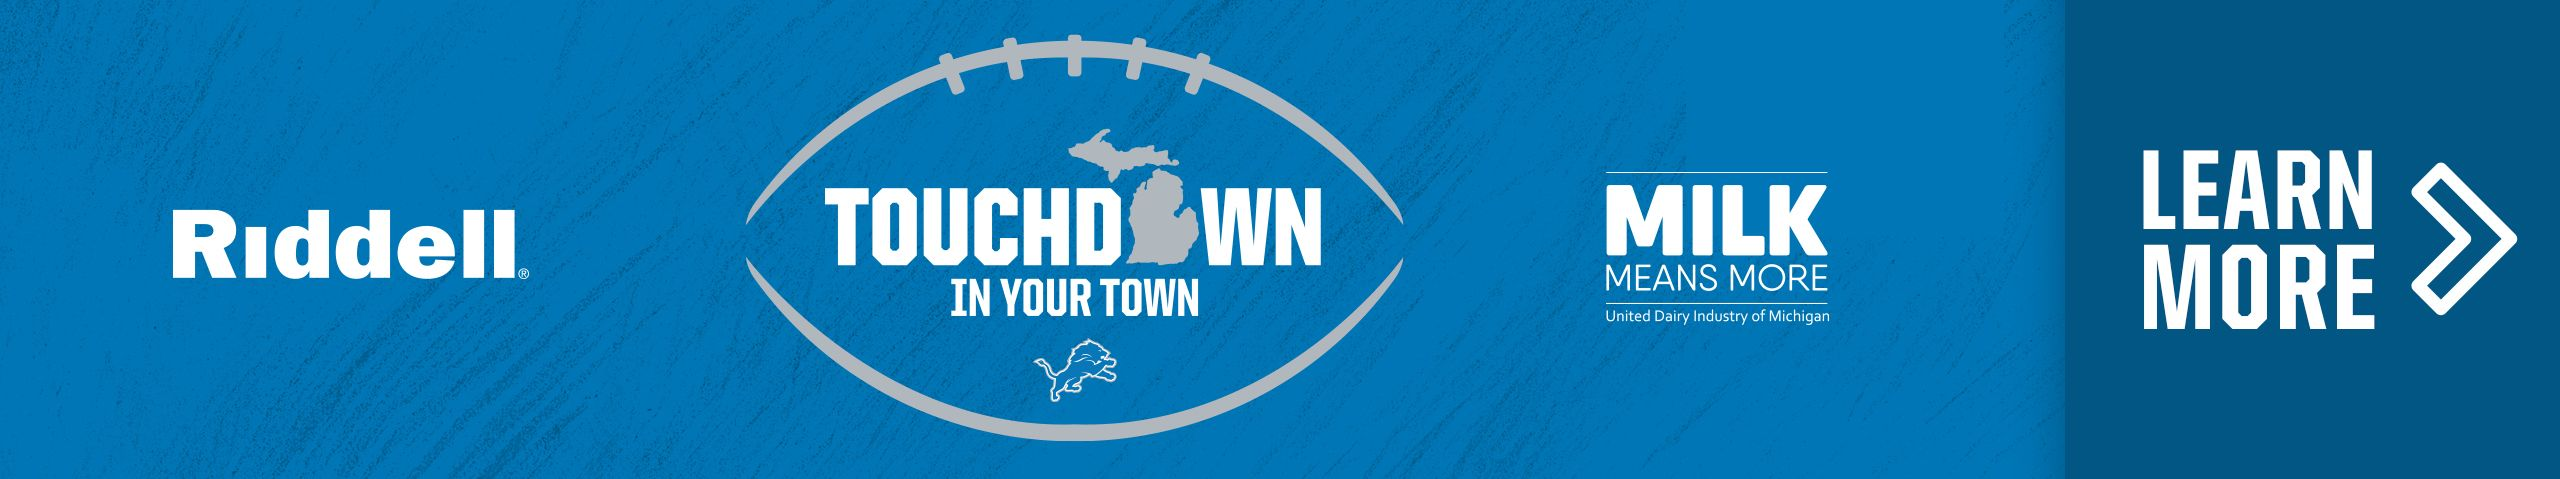 touchdown-in-your-town-header-learn